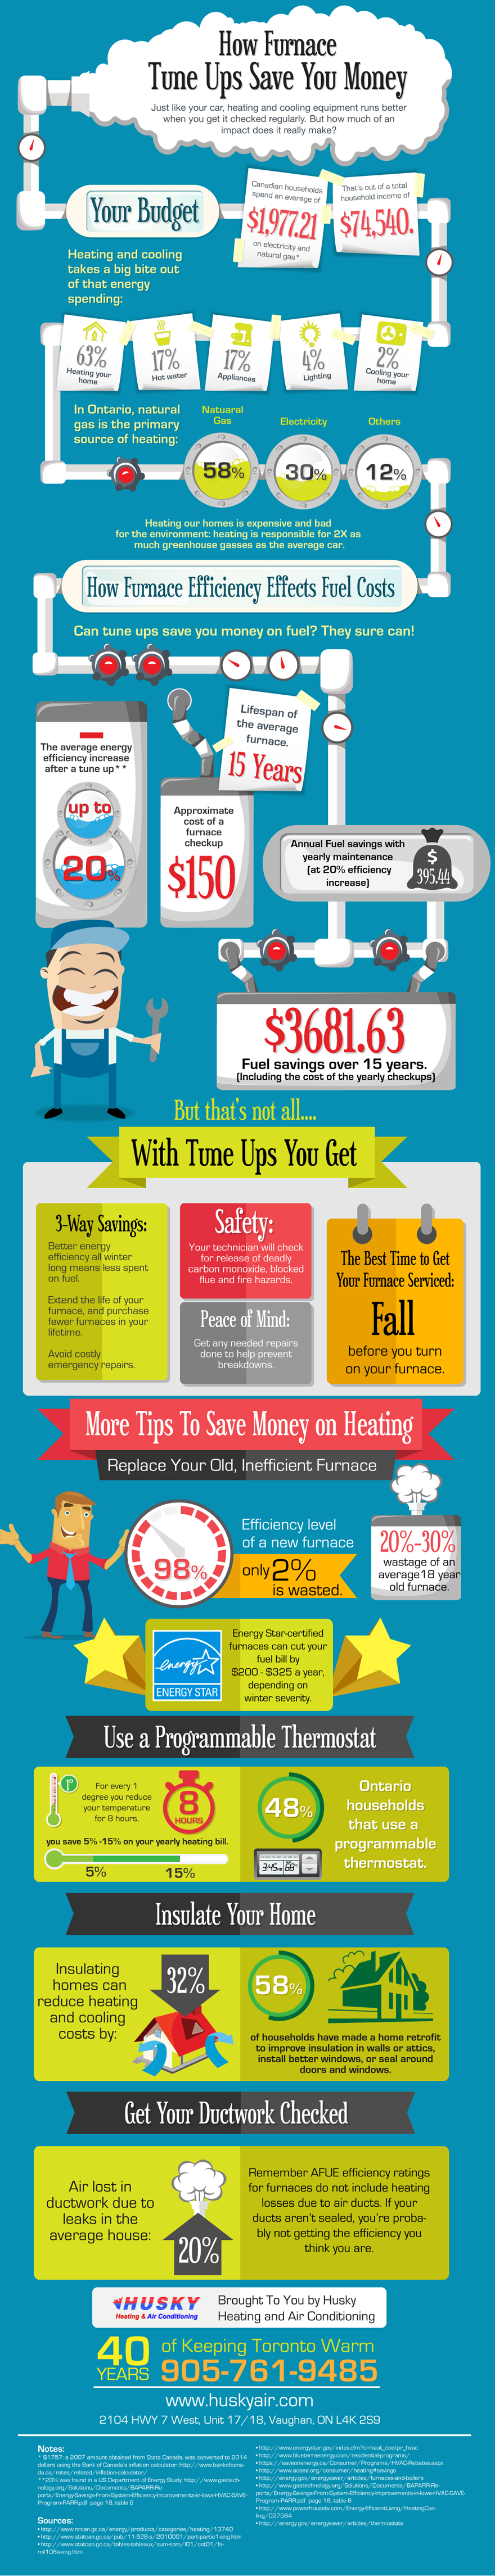 Infographic: How Furnace Tune Ups Save You Money